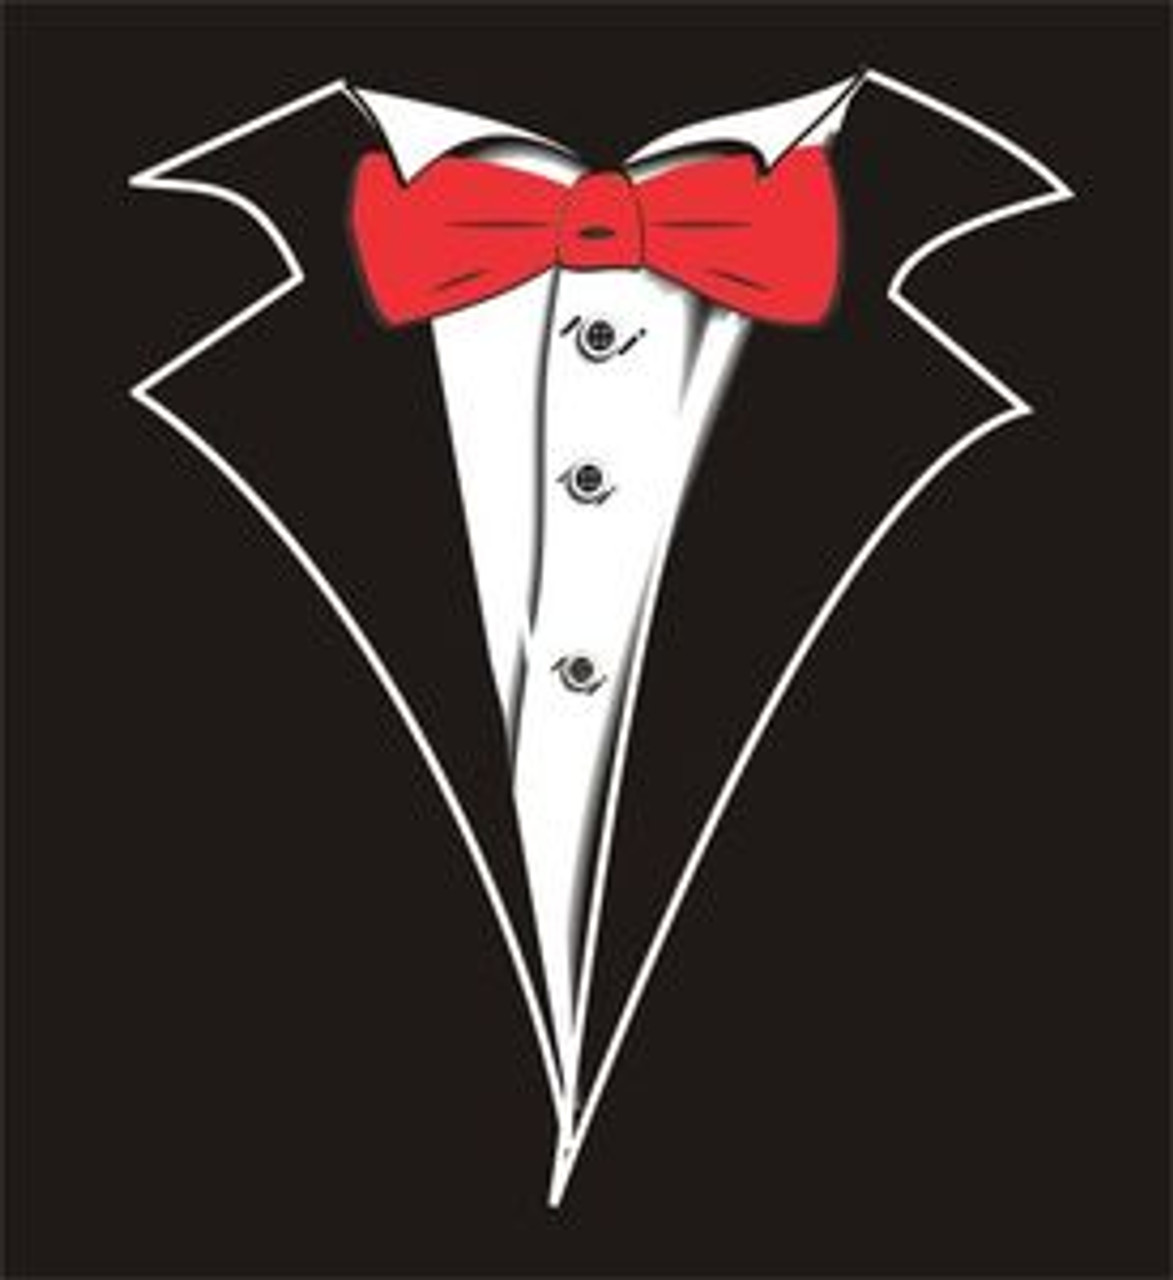 Red Tuxedo Roblox Kids Tuxedo T Shirt In Black With Red Tie No Carnation Shop Boys And Girls Tuxedo Tees